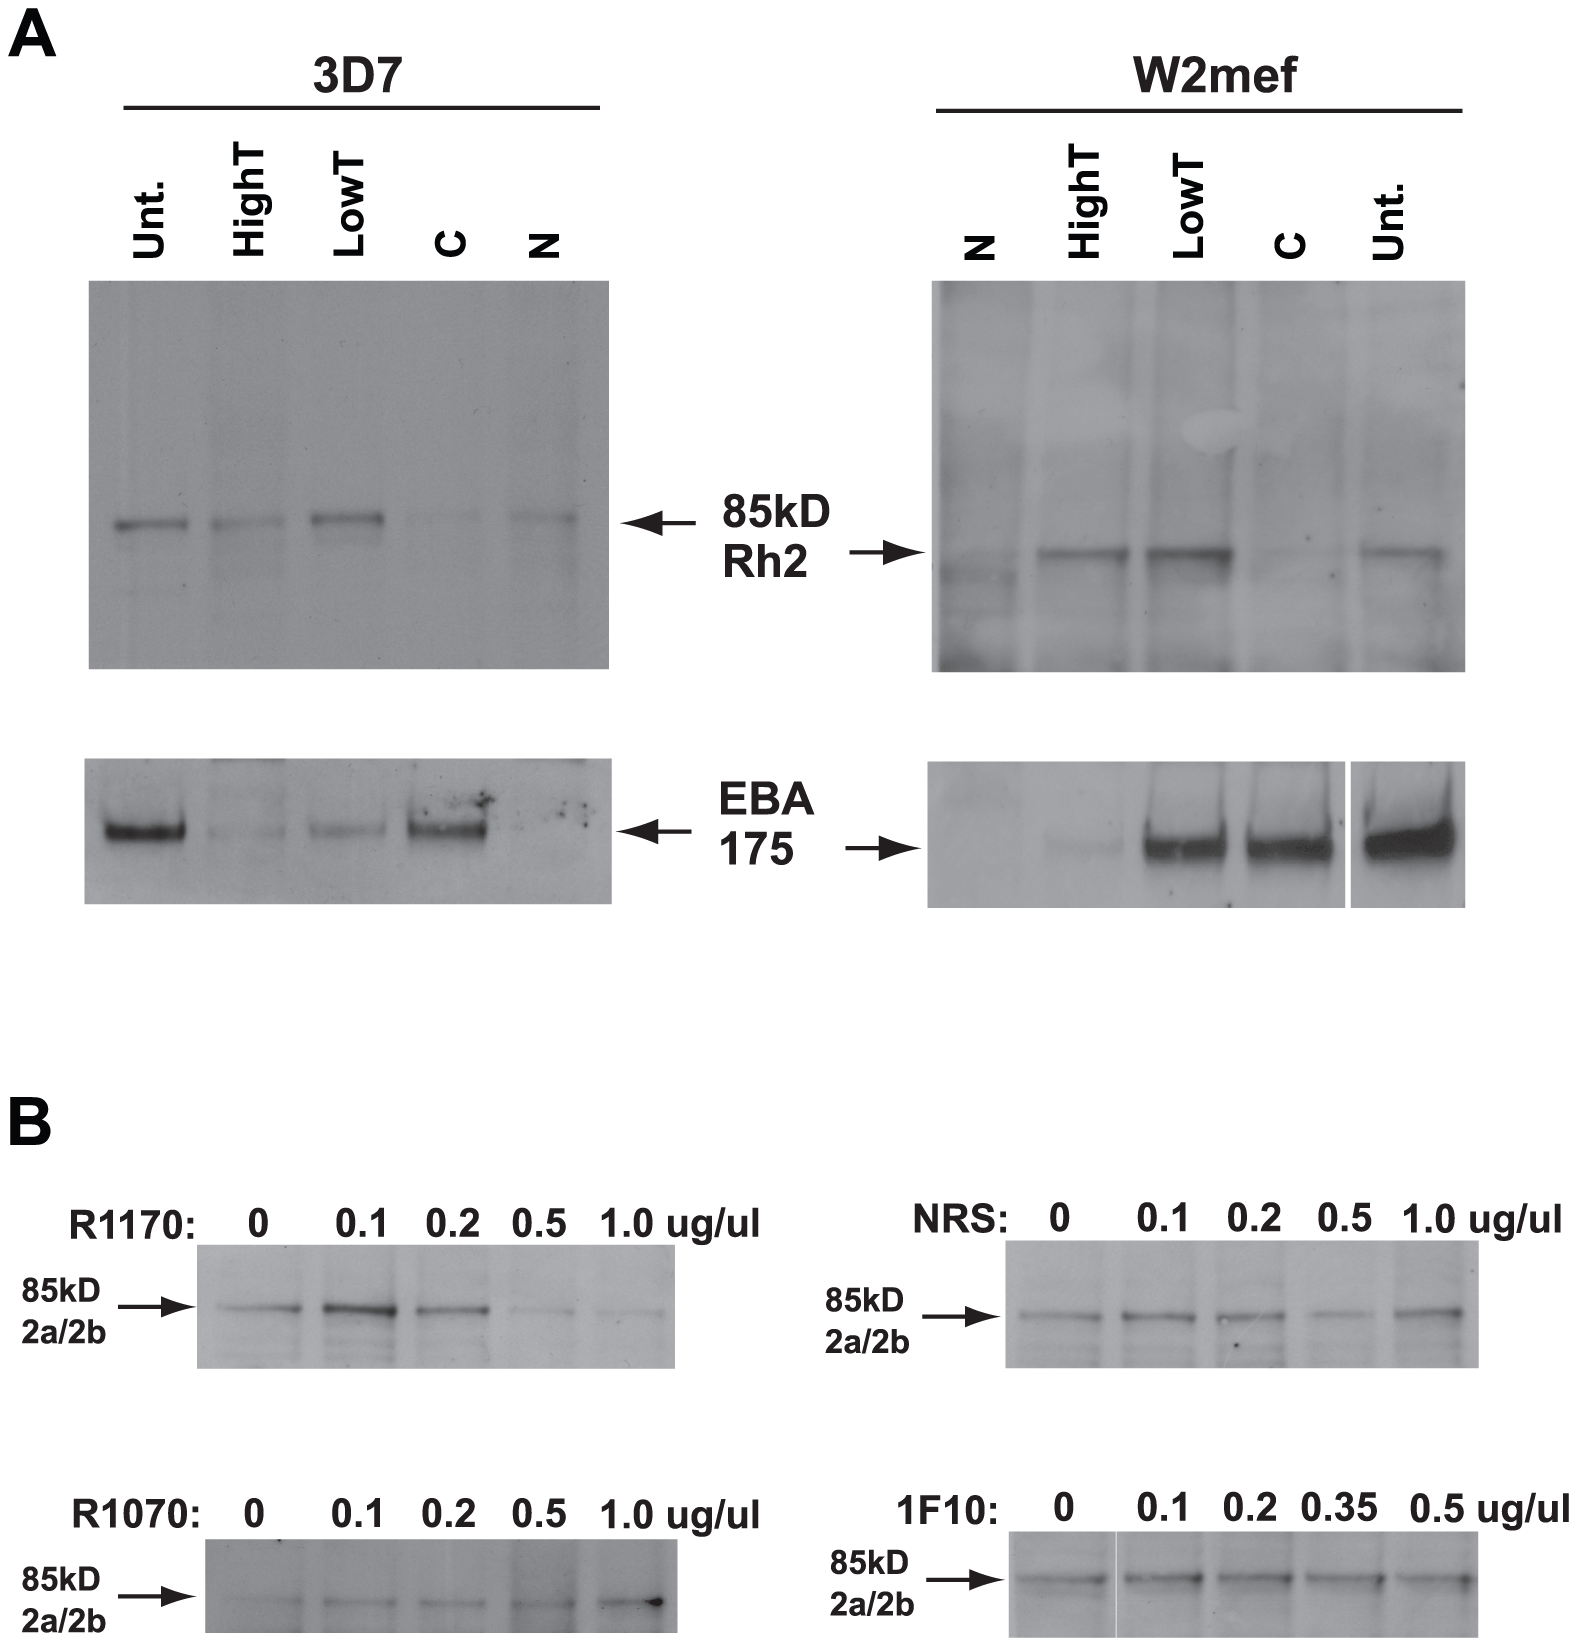 The PfRh2a/b 85 kDa processed product binds erythrocytes and binding is inhibited by antibodies to the binding domain.